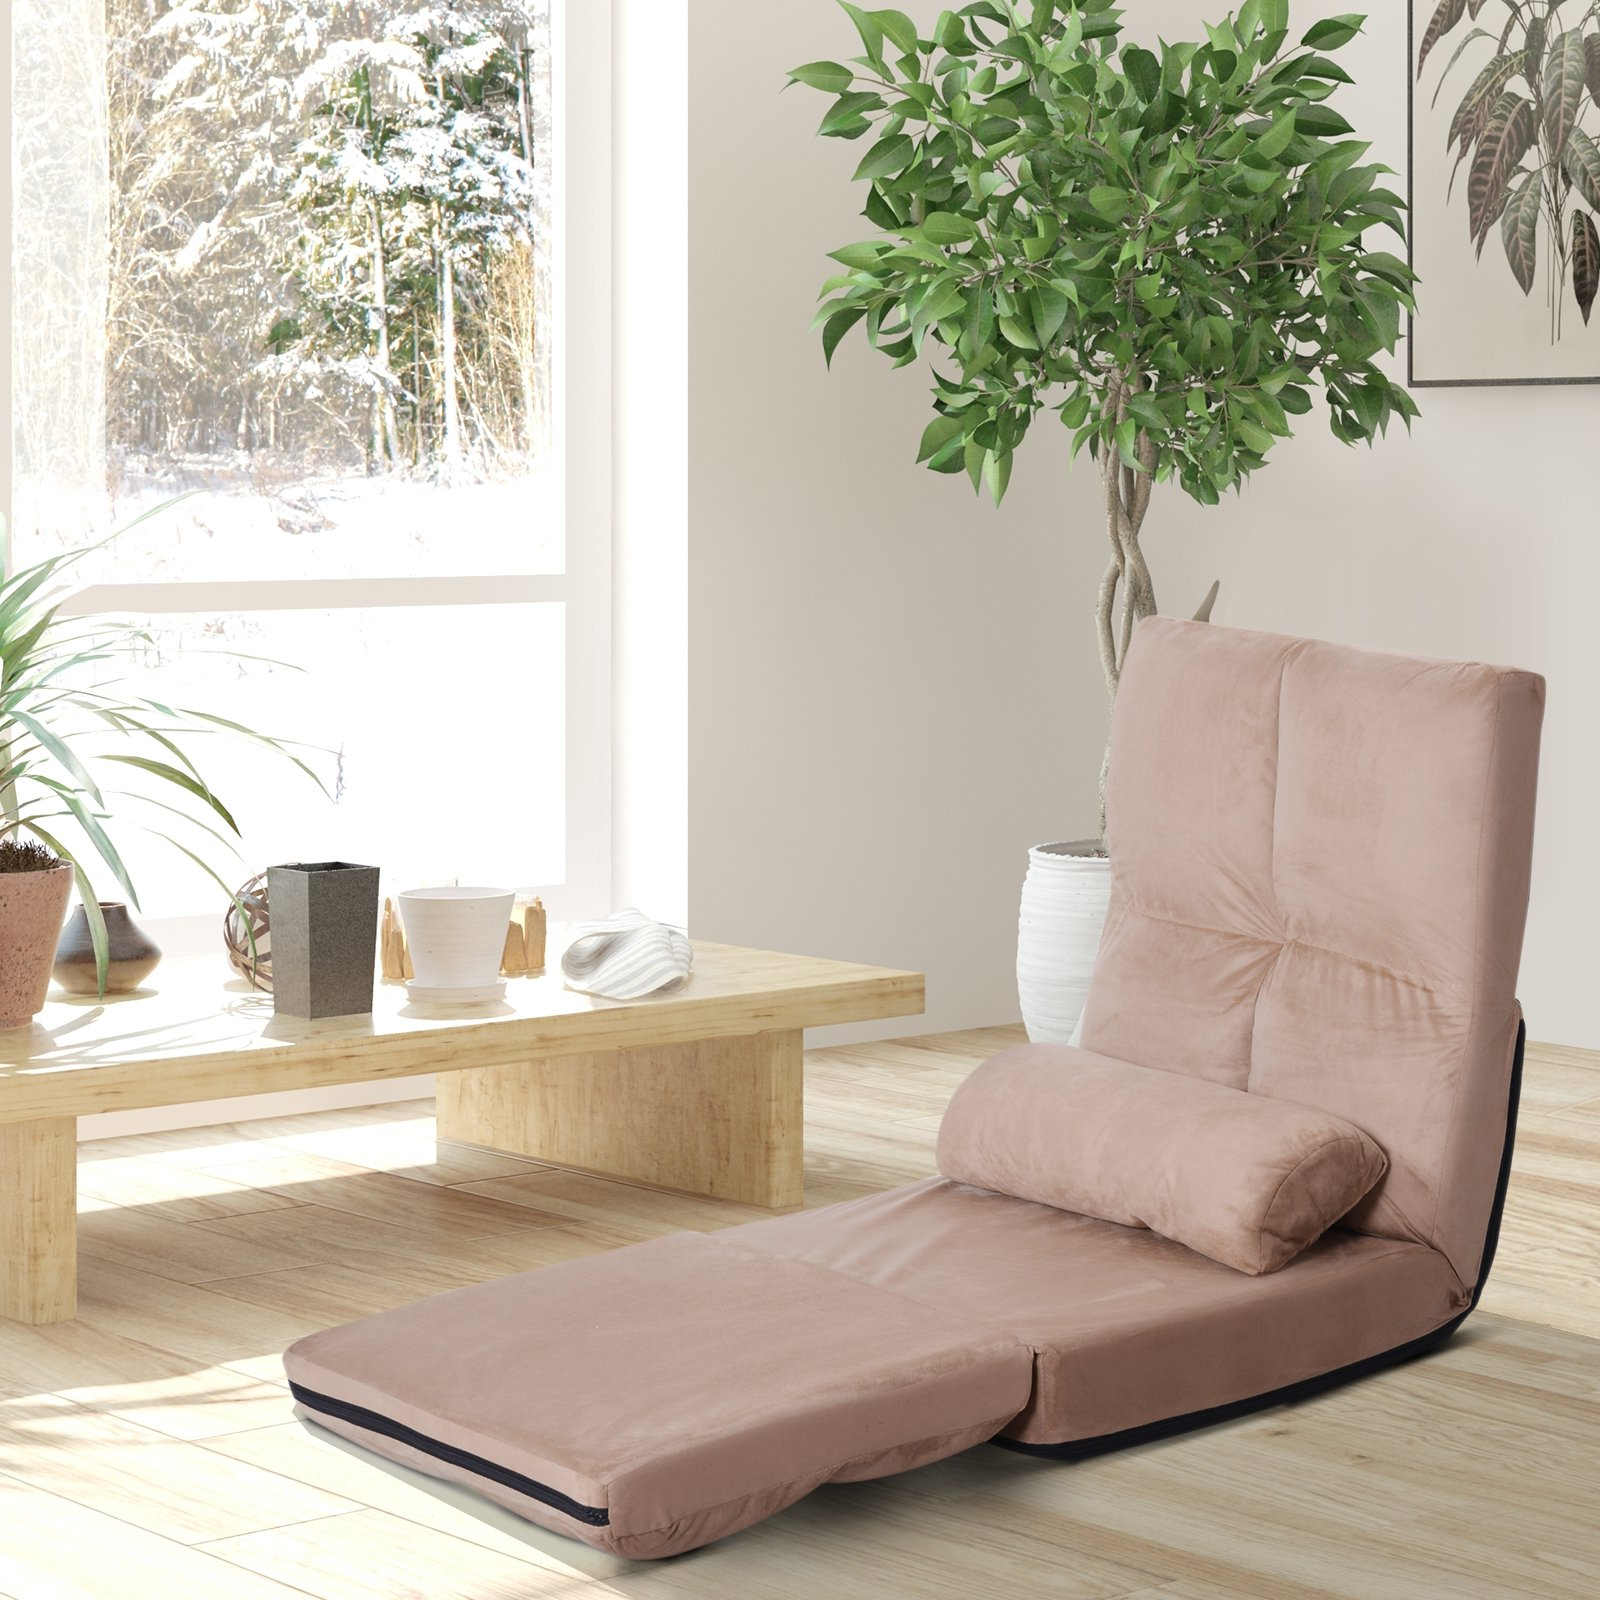 11-Position Floor Lazy Sofa Chair Adjustable Folding Couch Video